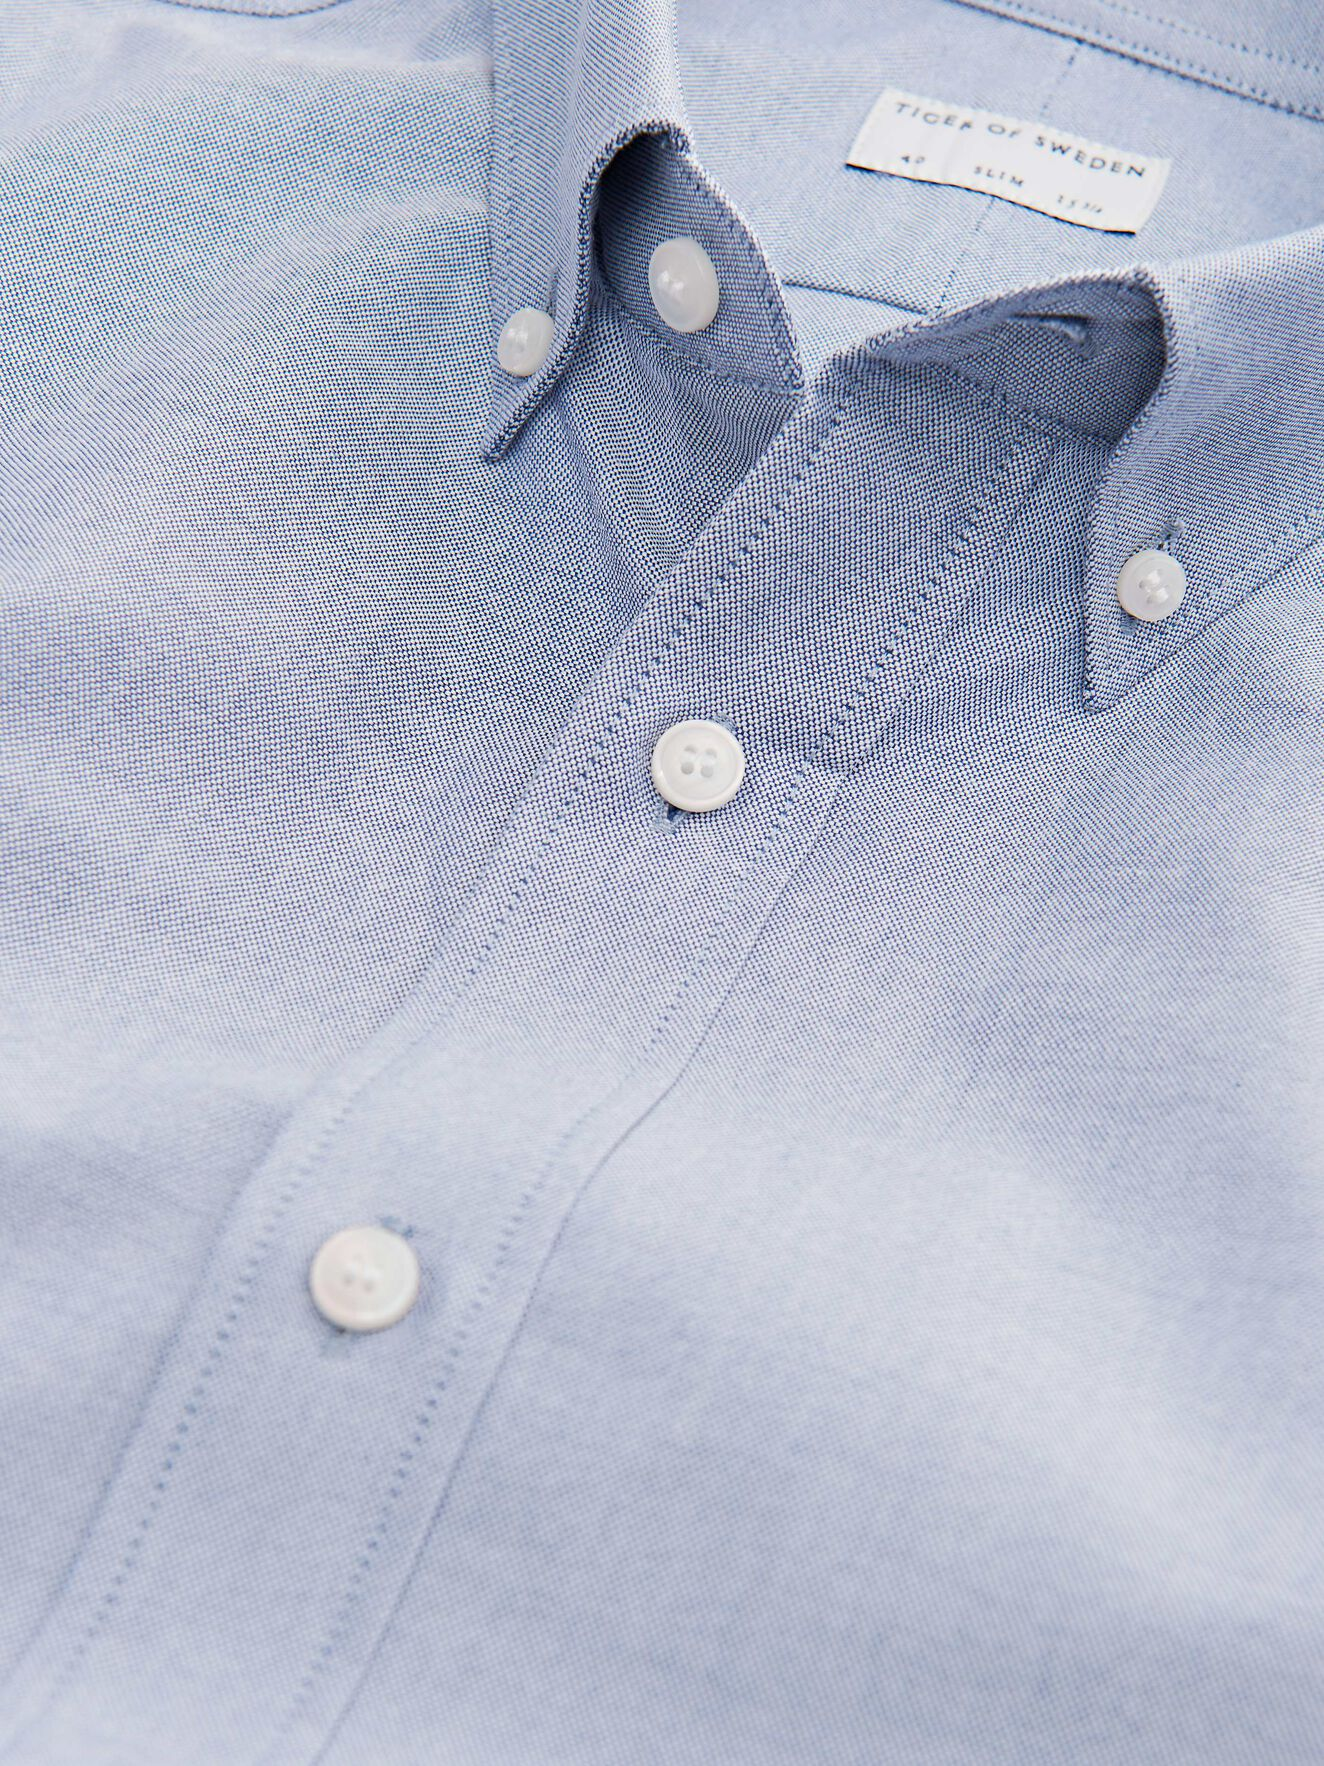 Fenald Shirt in Grey Blue from Tiger of Sweden